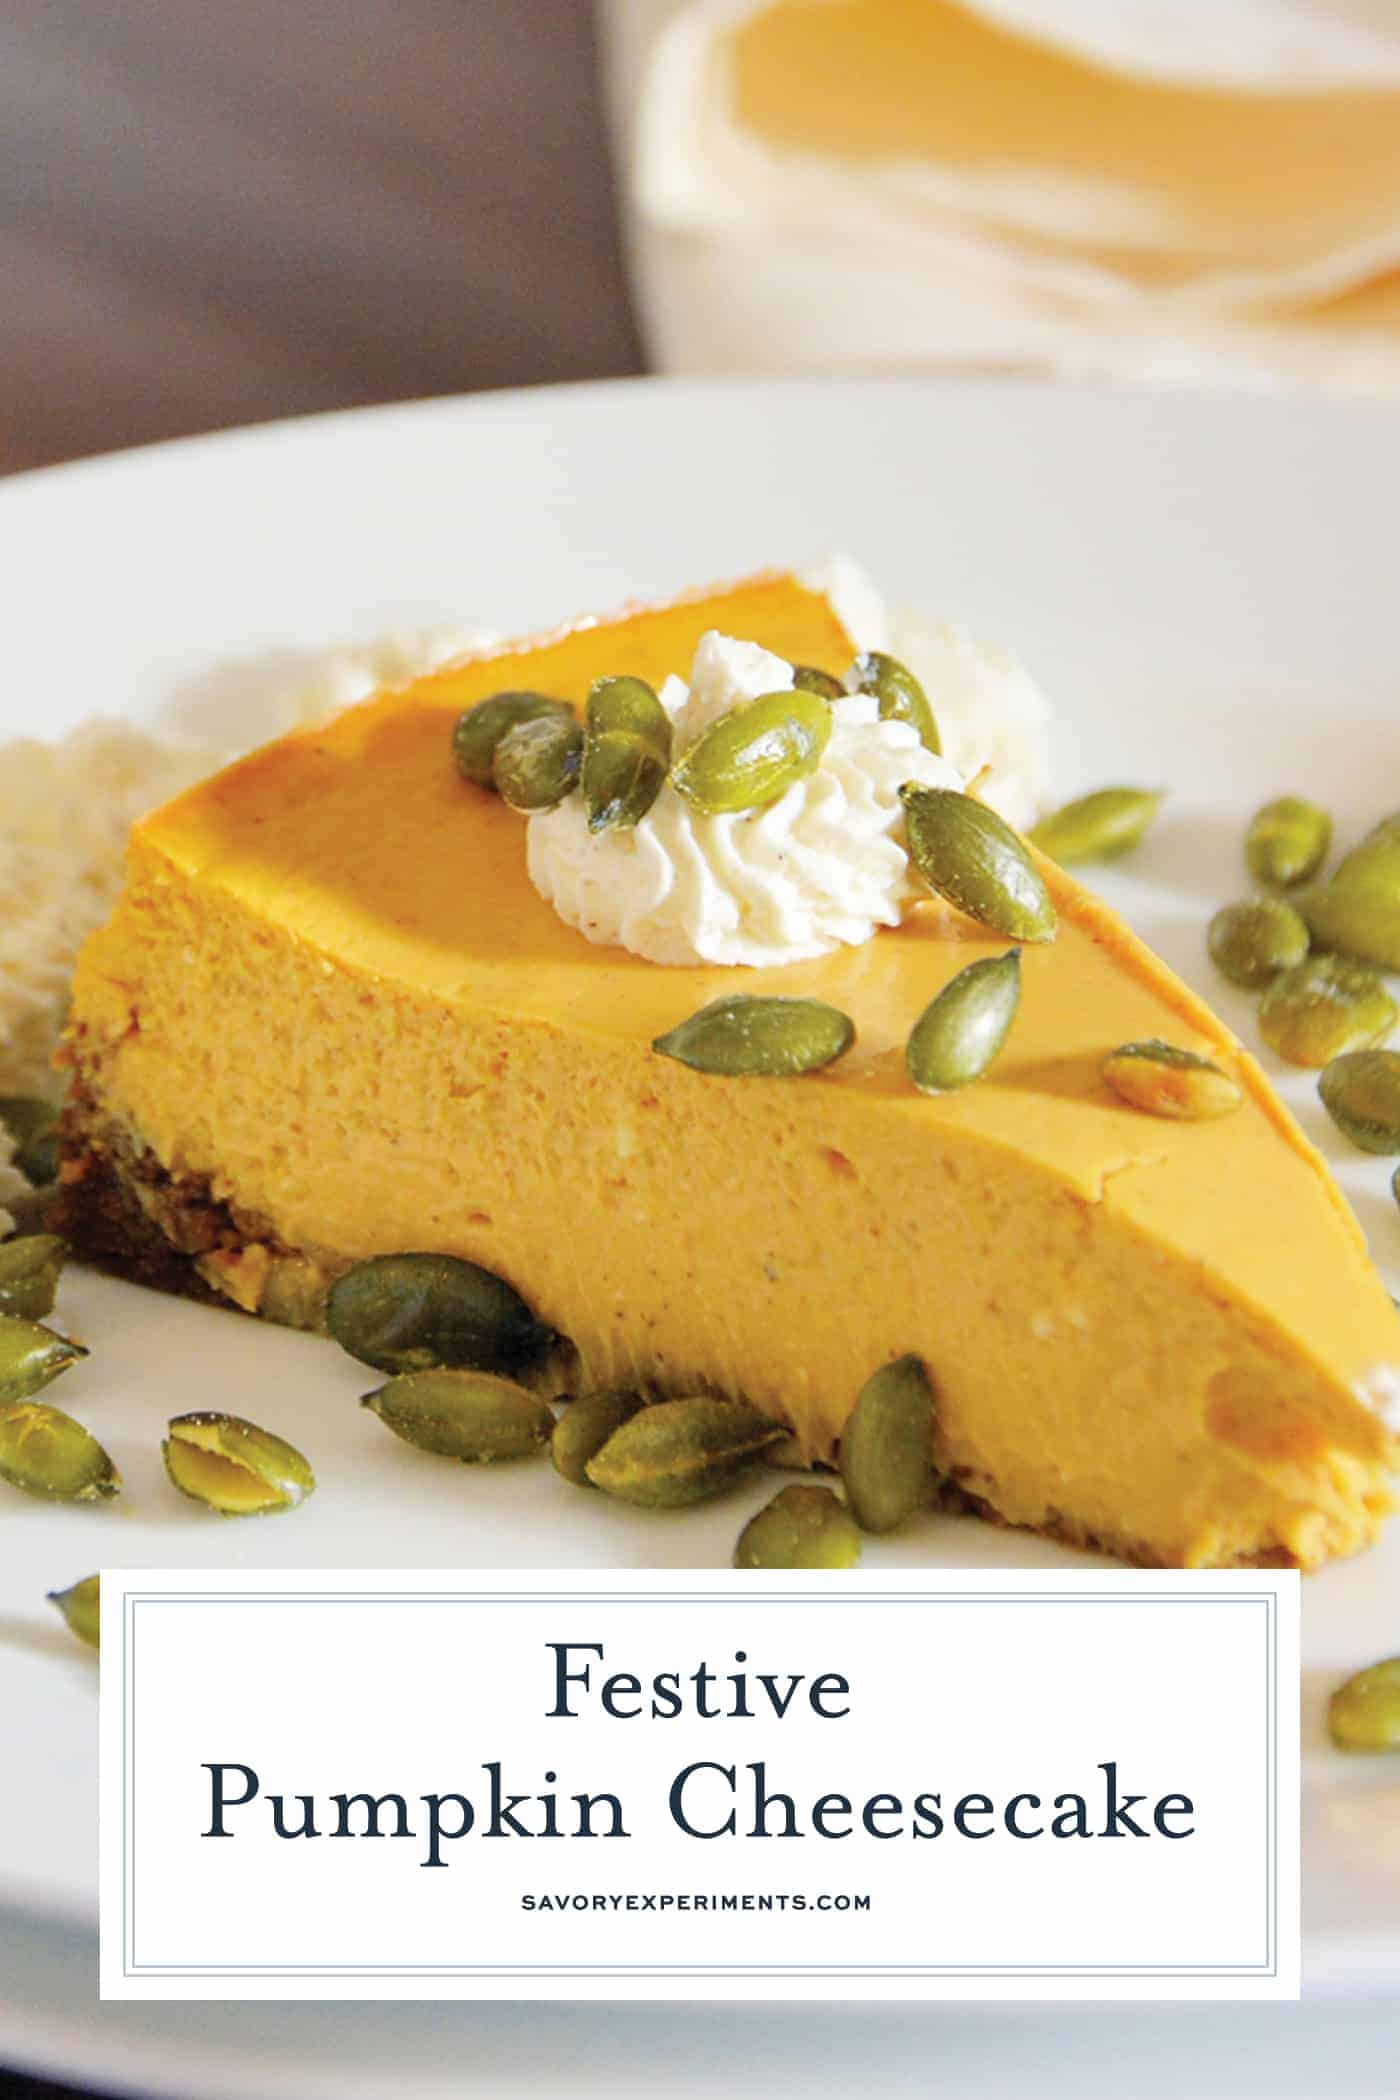 This easy Pumpkin Cheesecake recipe features a gingersnap crust topped, salty pumpkin seeds, and pumpkin spiced whipped cream. Simple and delicious!